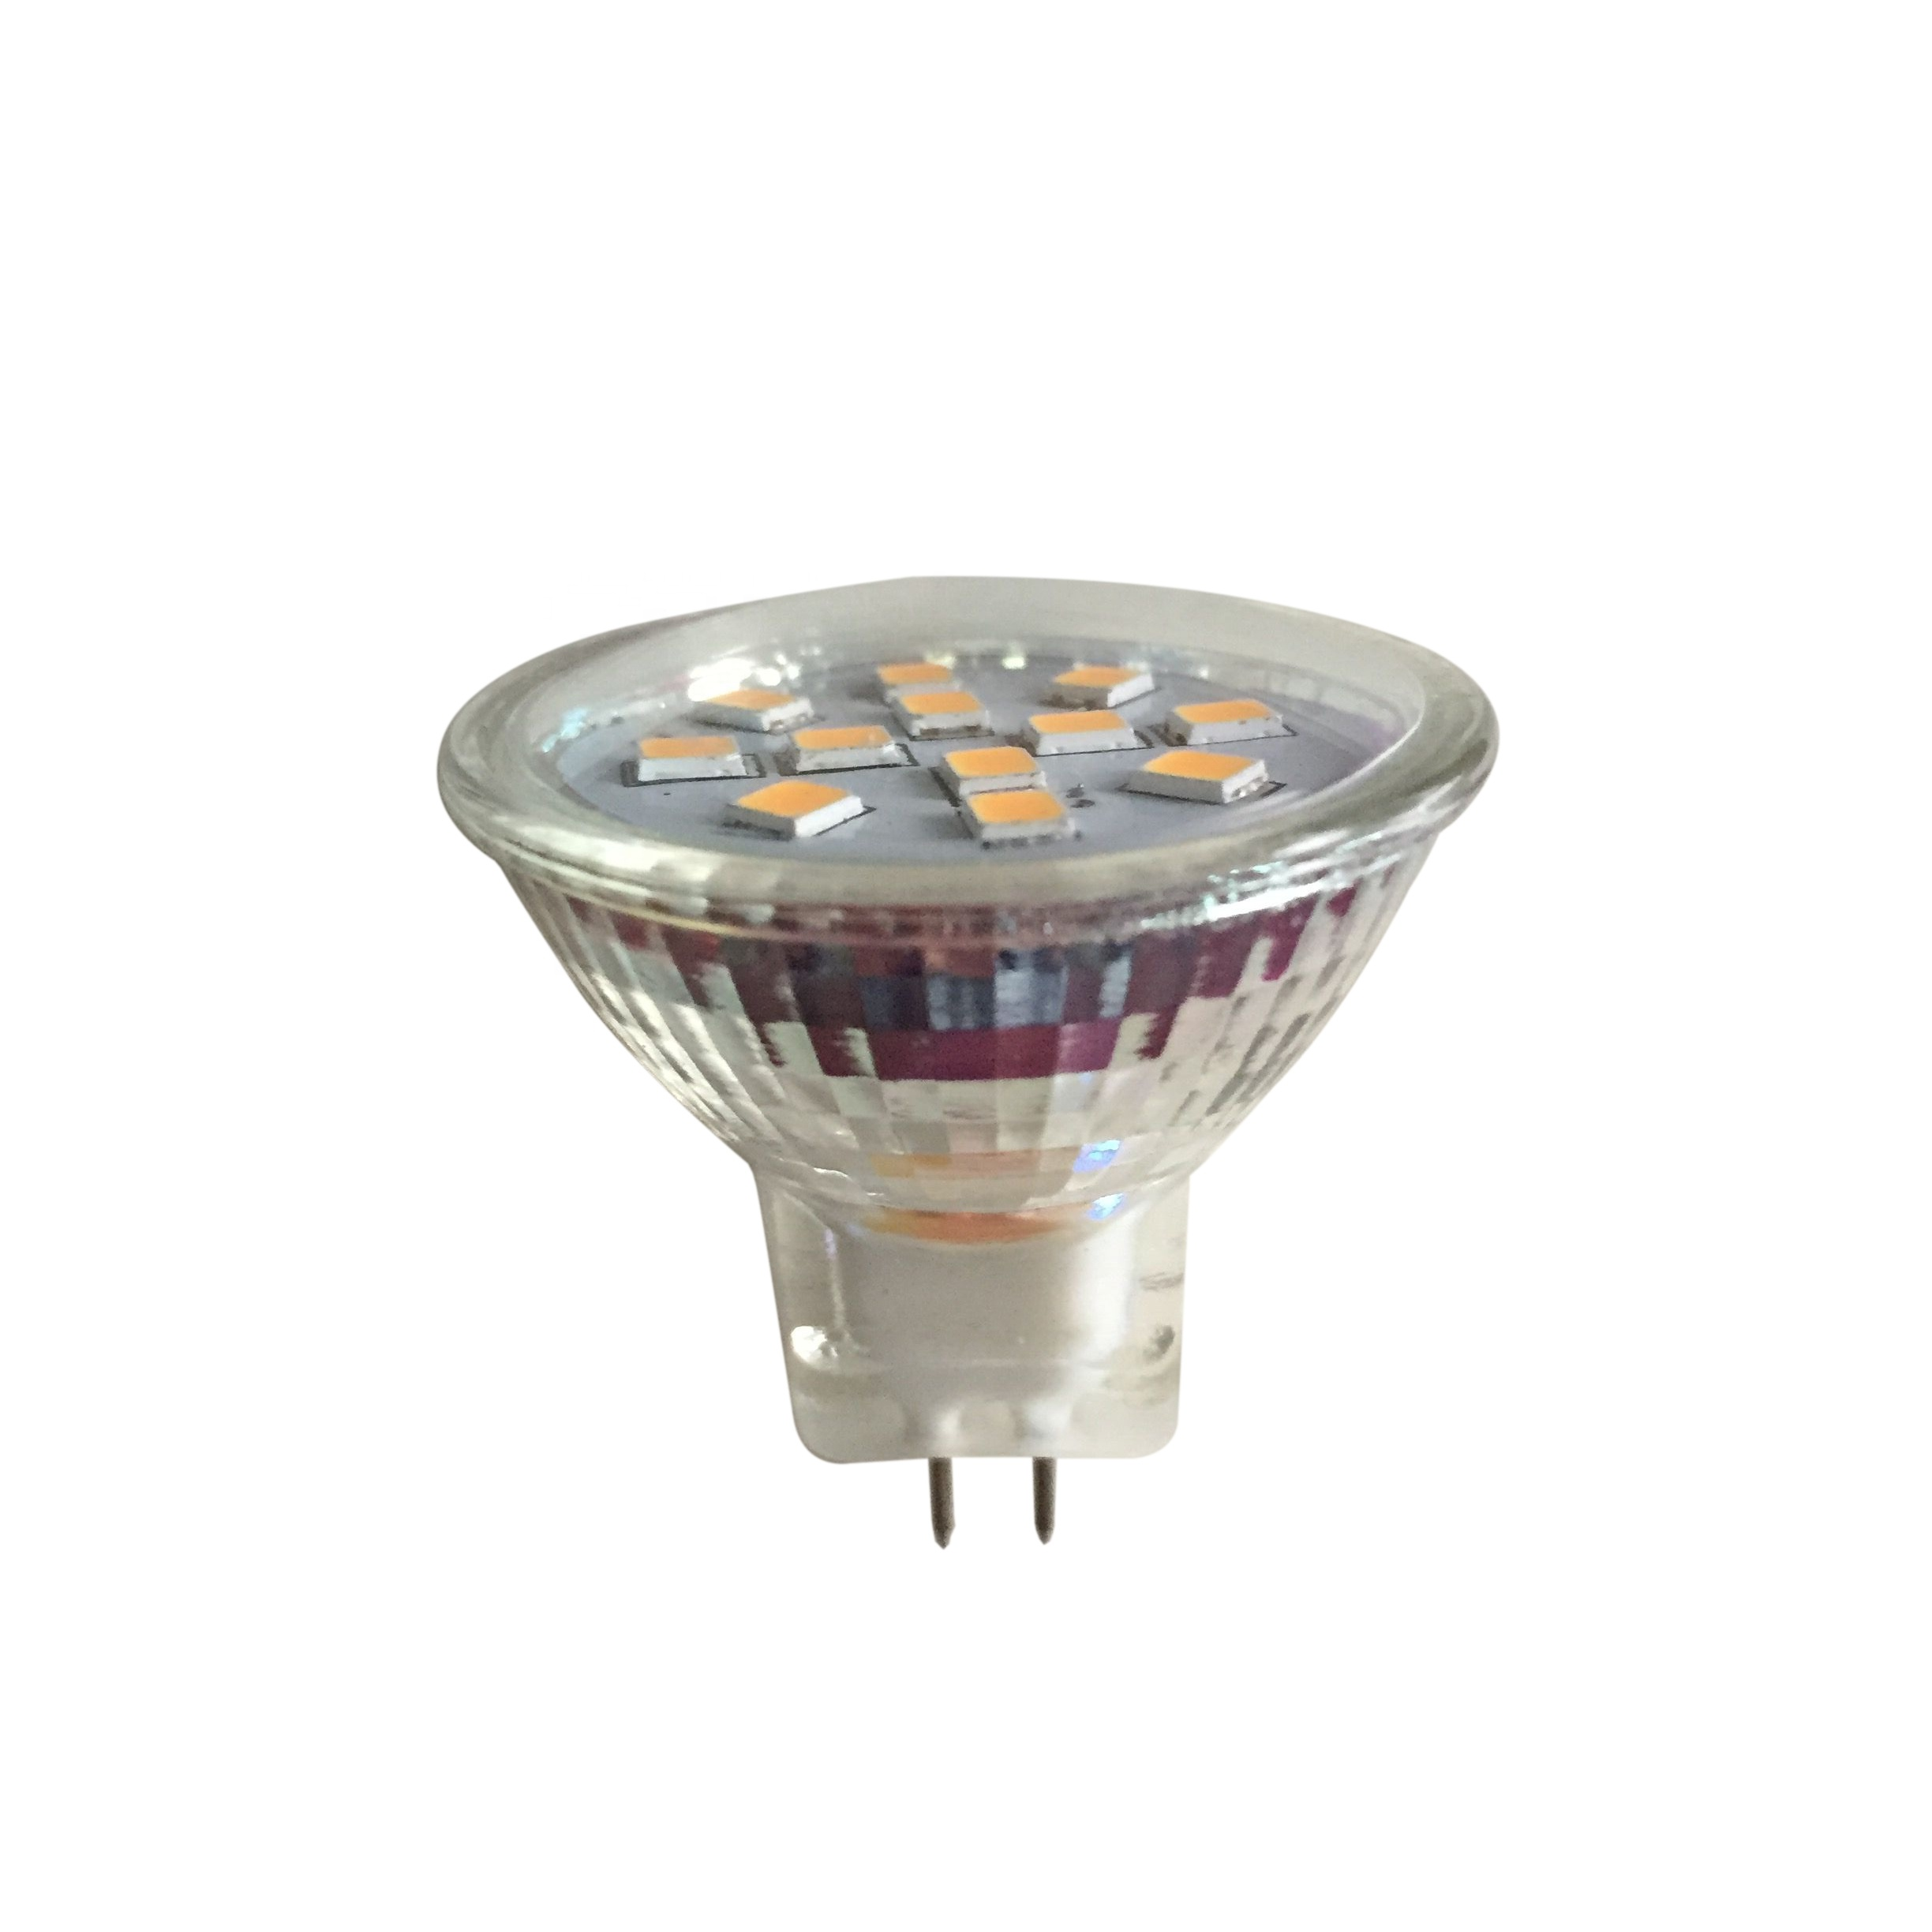 glass cover 80Ra 2.4w PMW dimmable 12v mr11 led